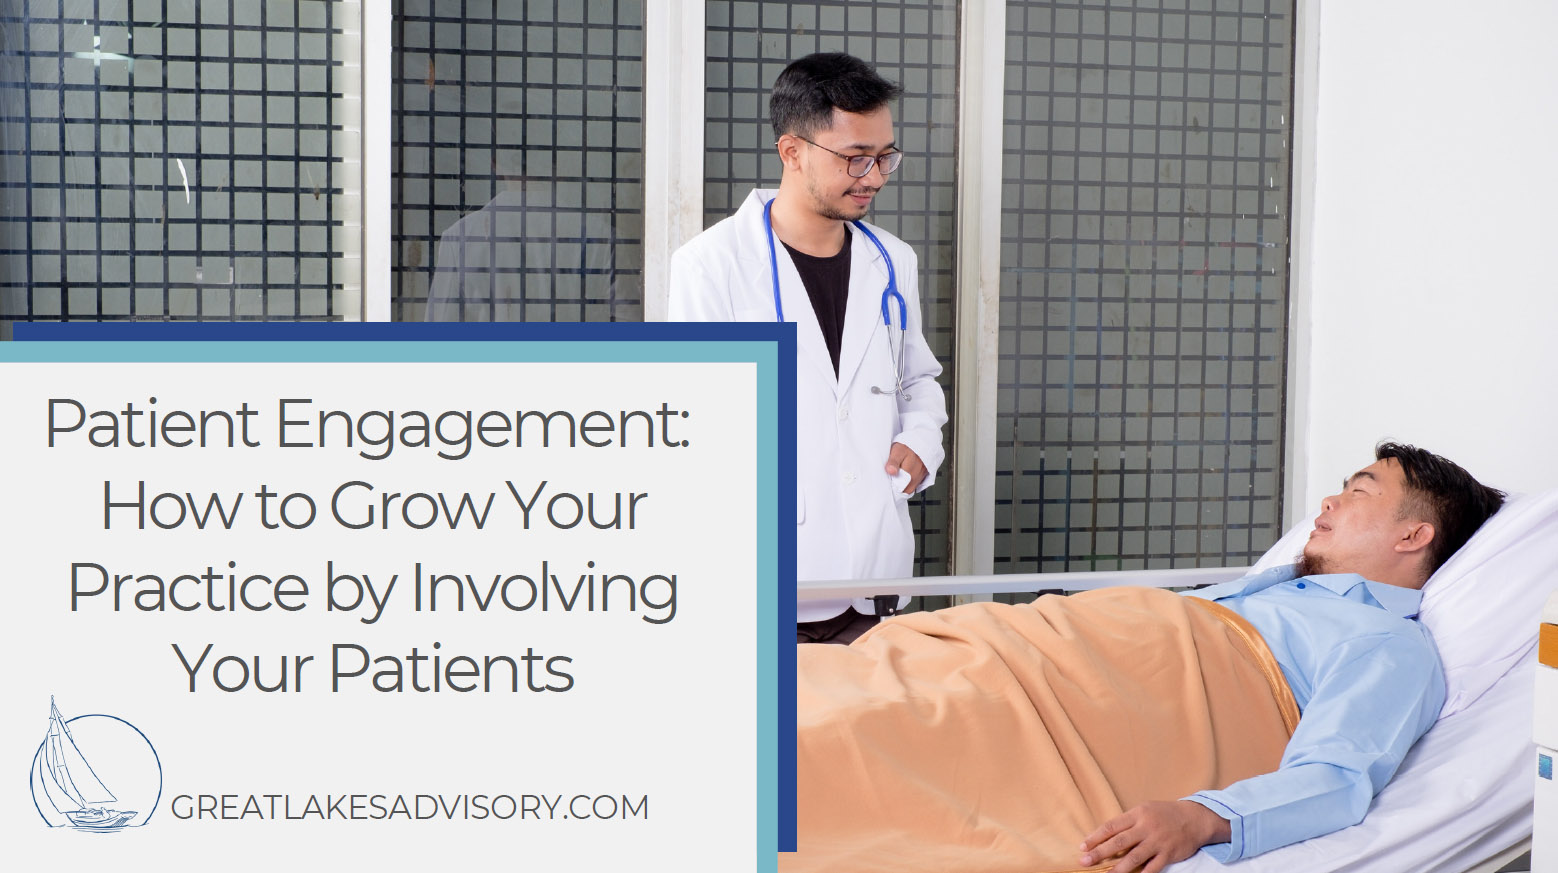 Patient Engagement: How to Grow Your Practice by Involving Your Patients